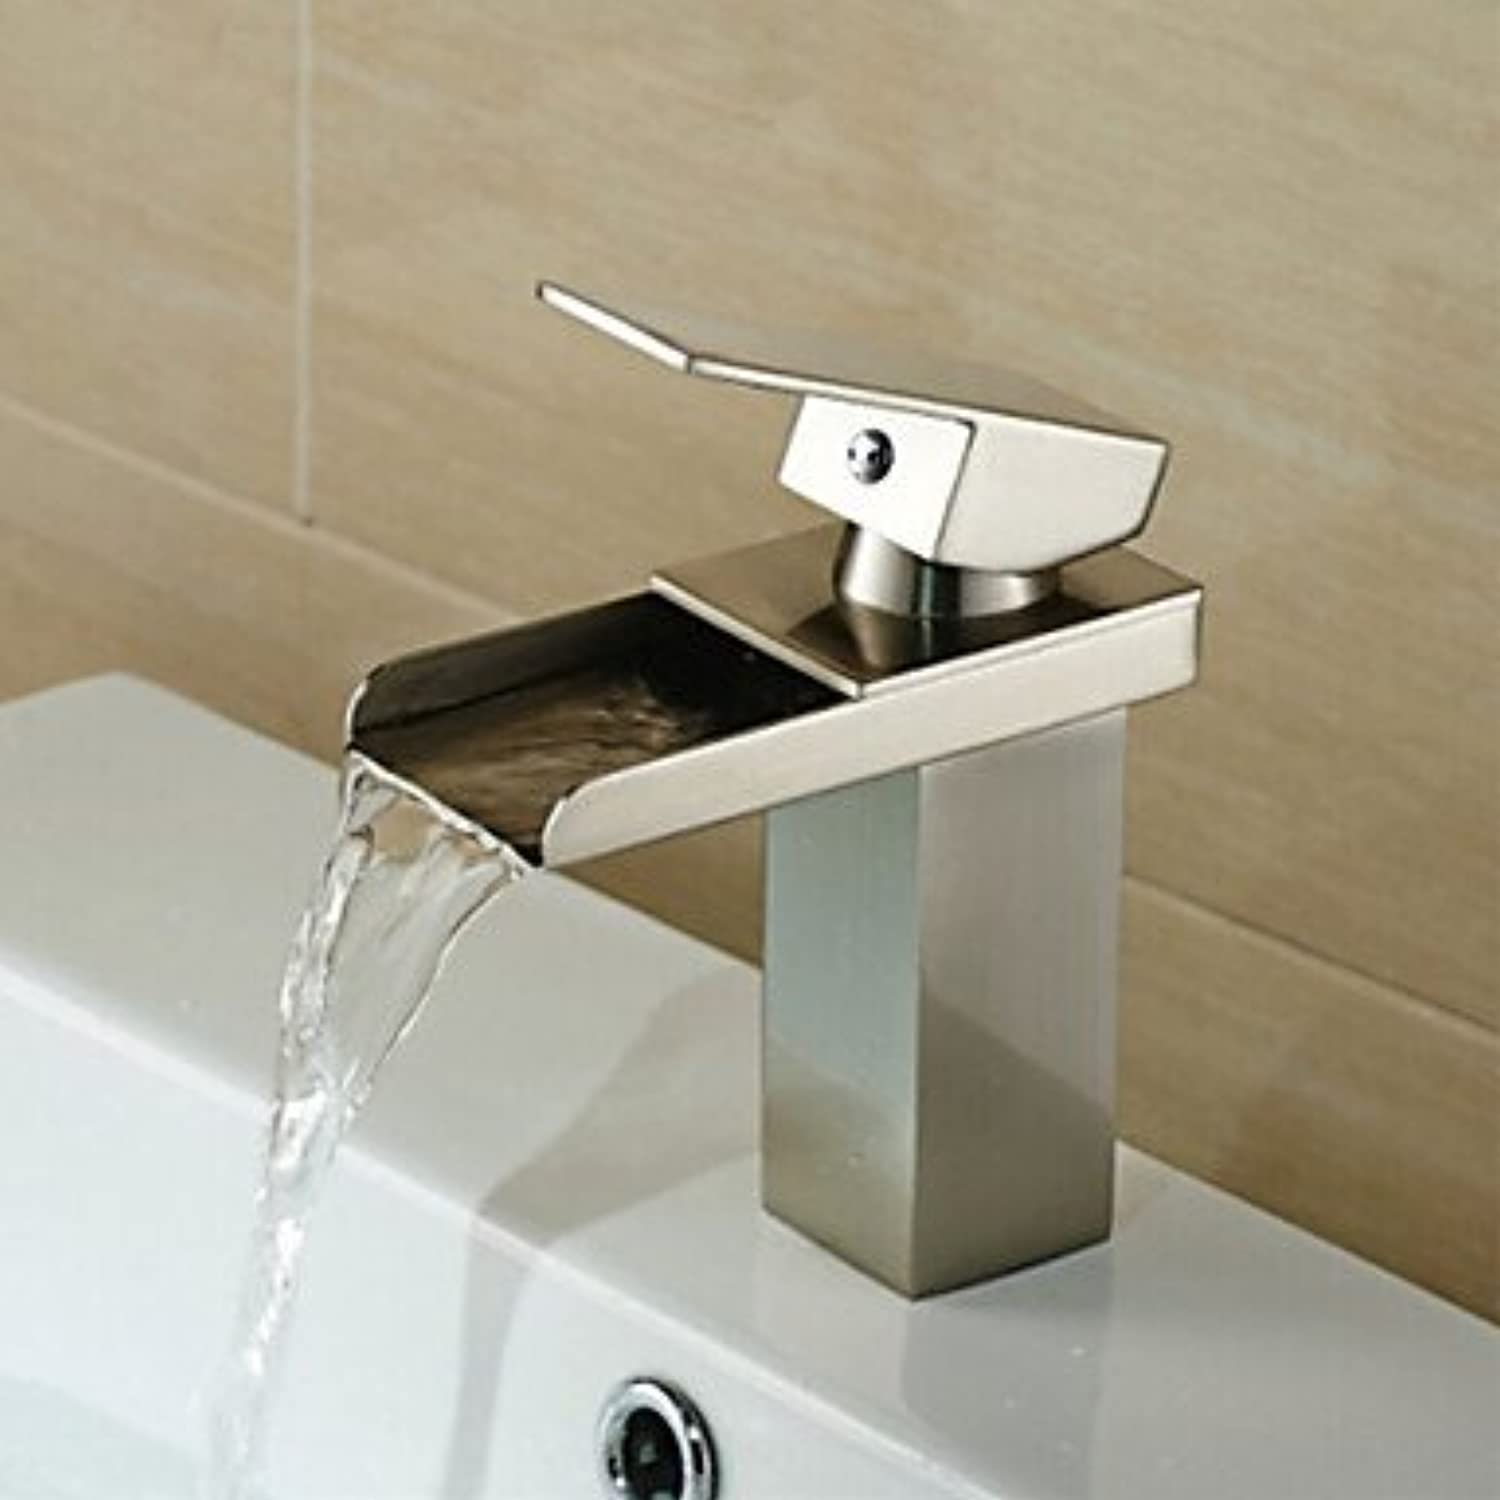 AA Faucet£? Waterfall Nickel Brushed Hot and Cold Bathroom Faucet